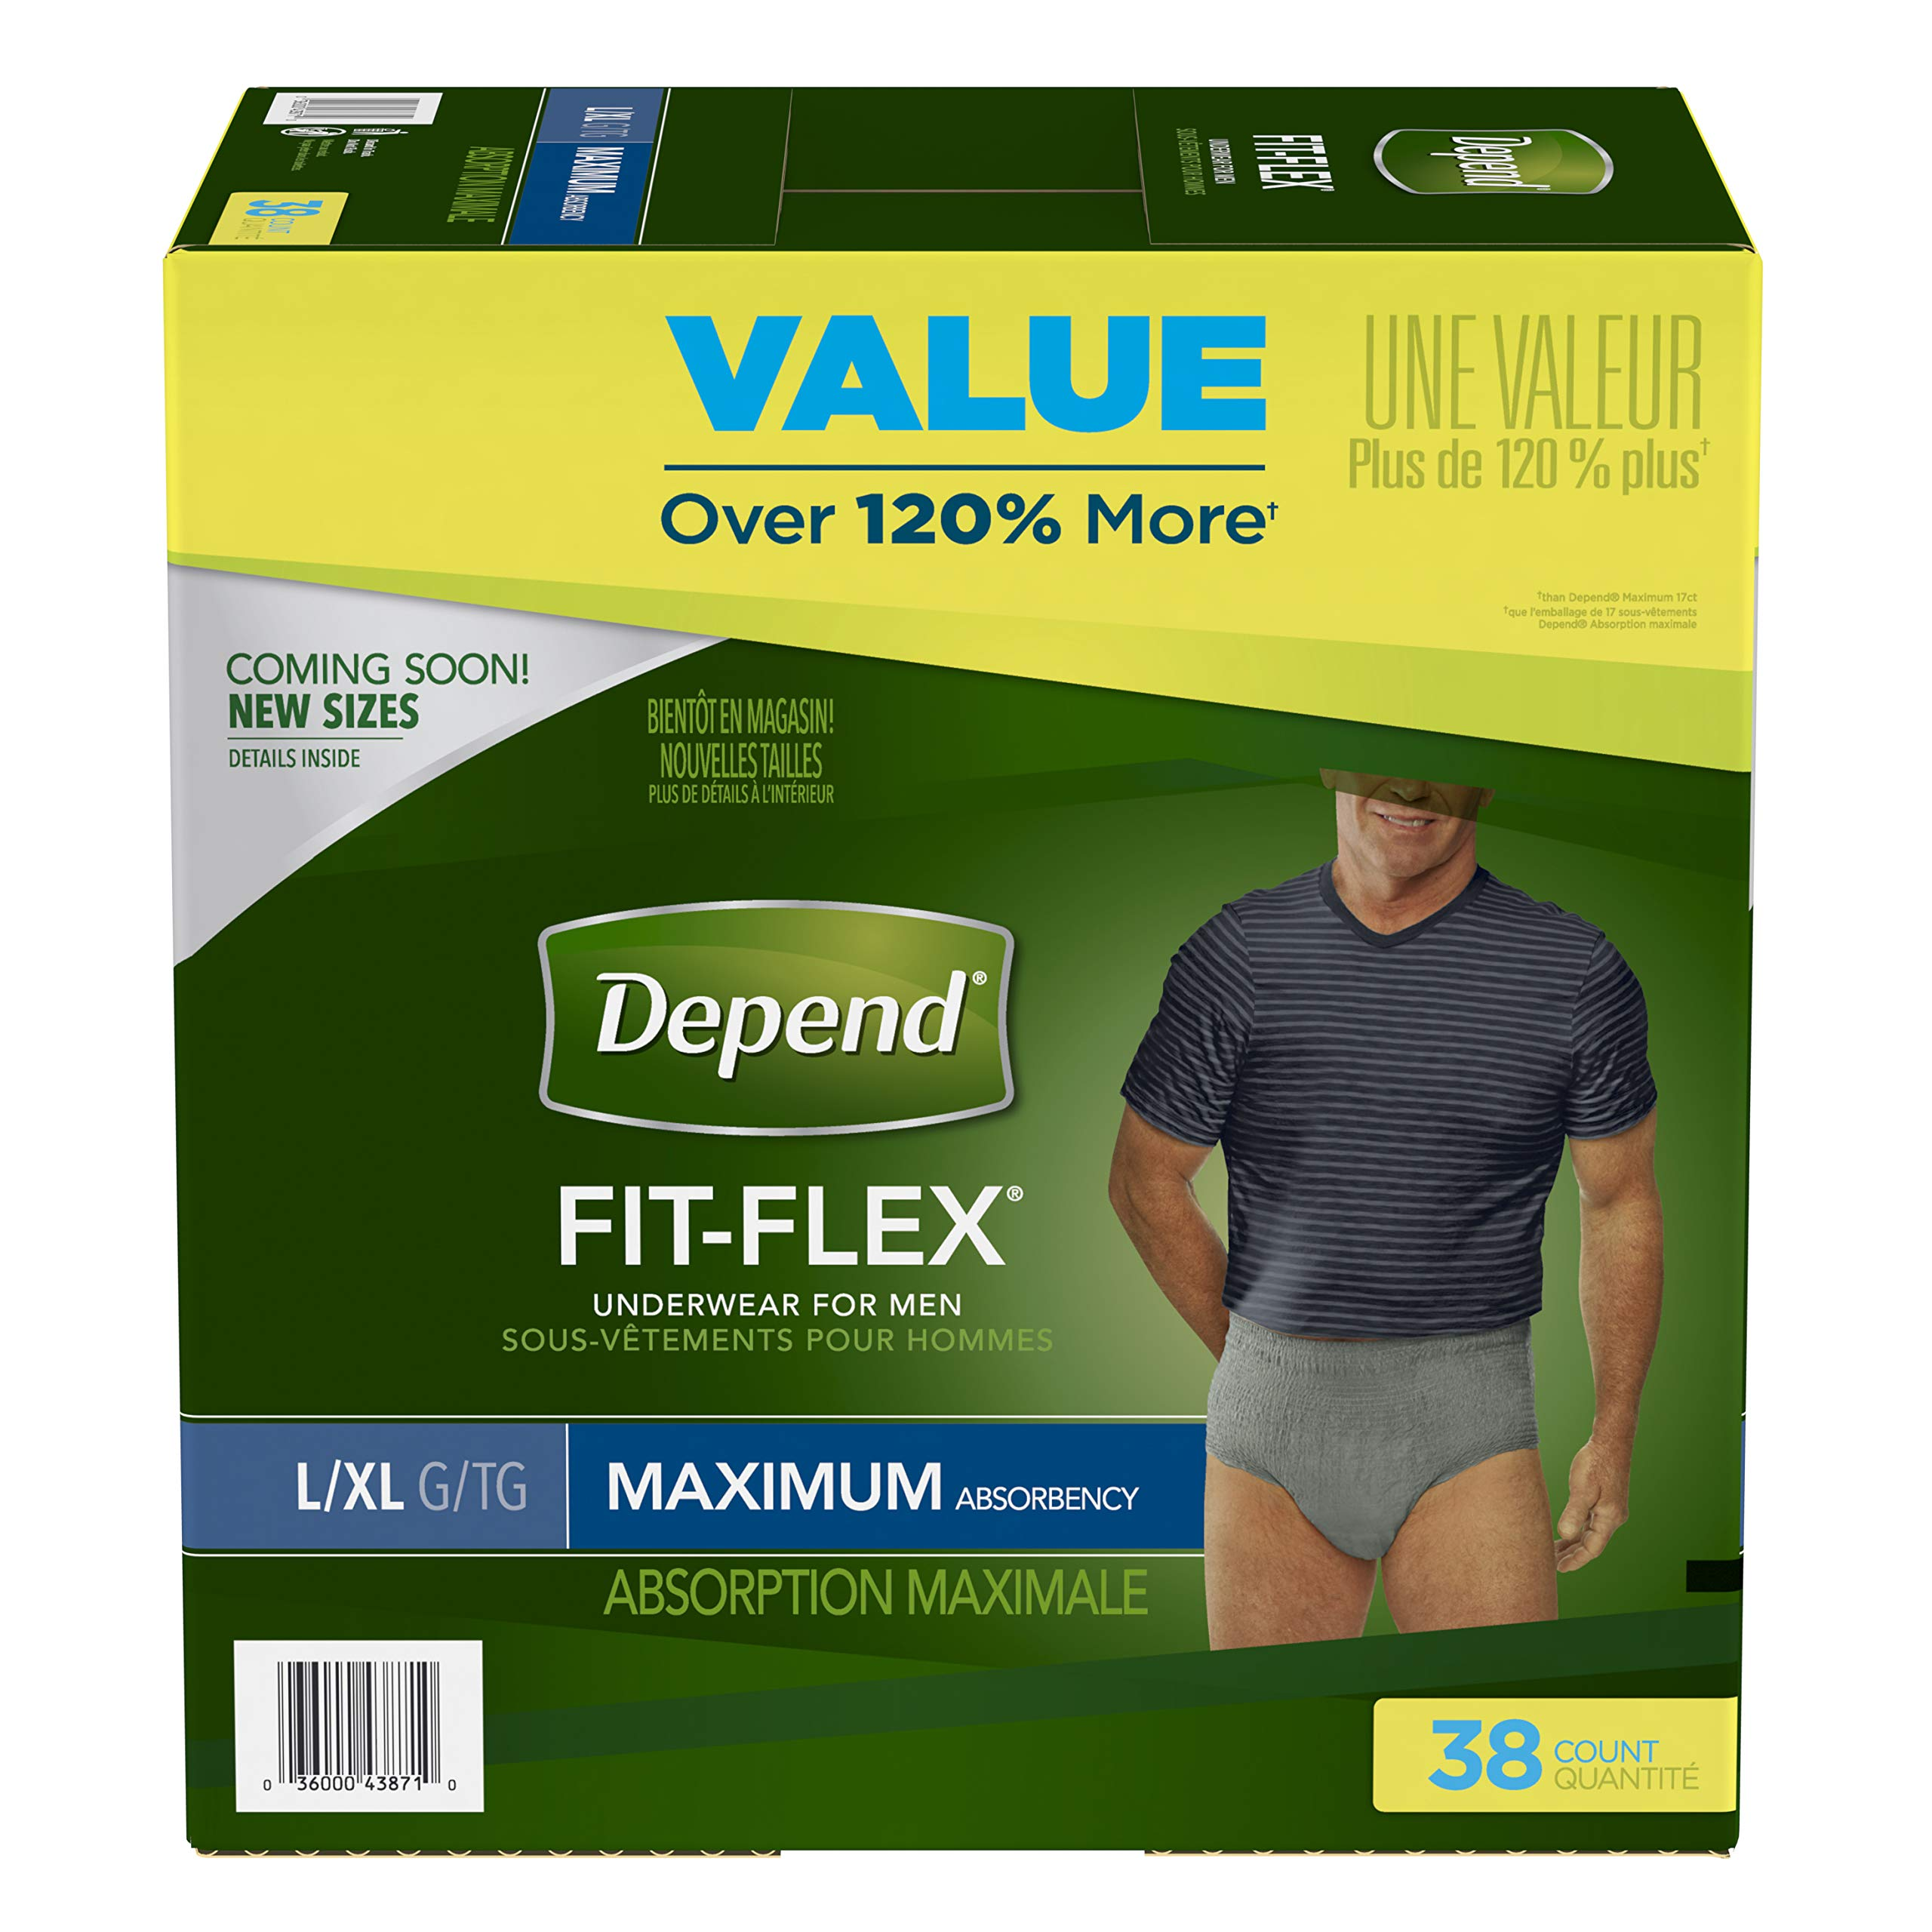 Depend FIT-FLEX Incontinence Underwear for Men, Maximum Absorbency, Large, Gray (Packaging may vary)